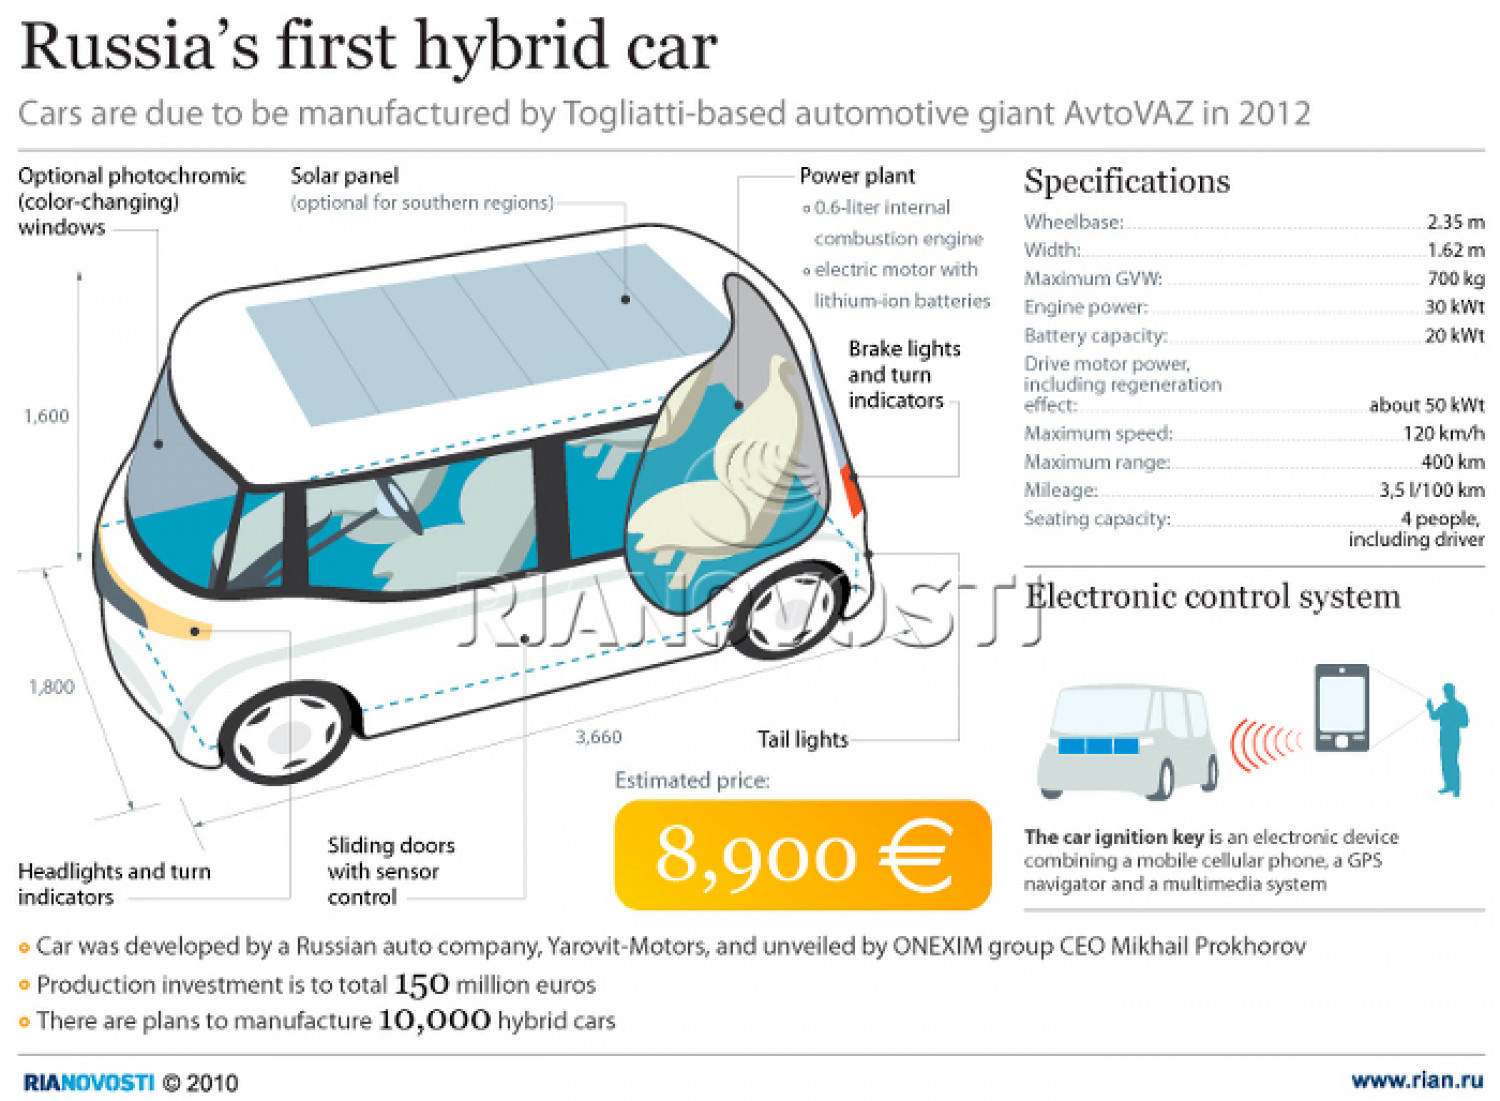 Russia's First Hybrid Car  Infographic